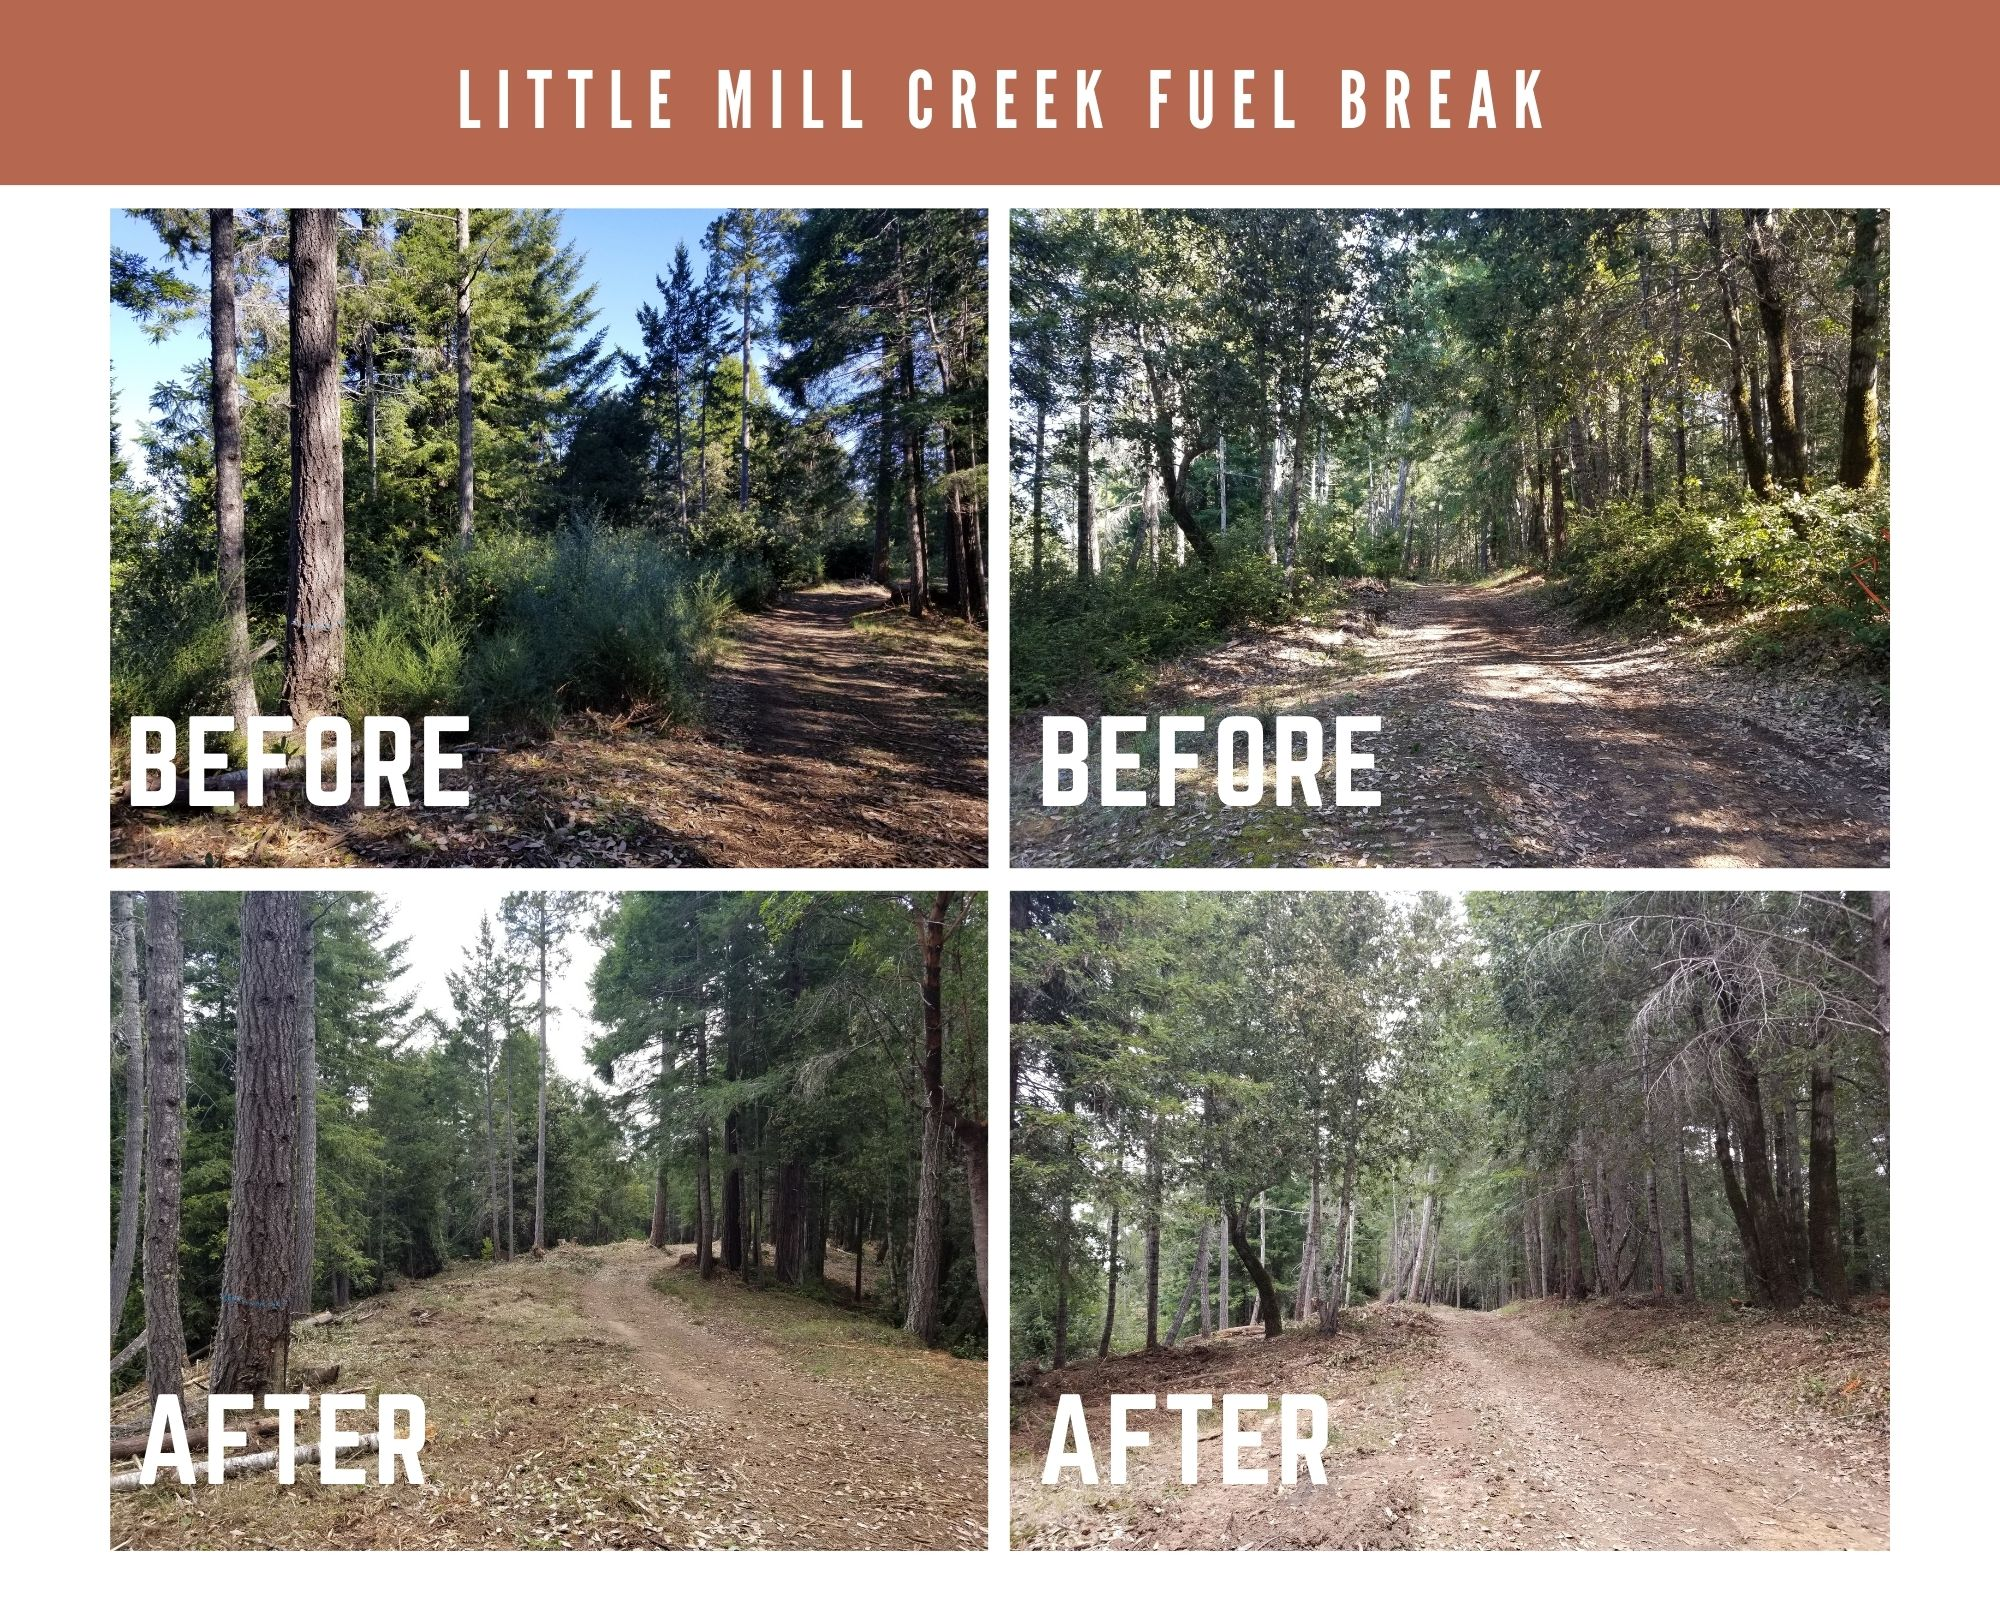 Little Mill Creek fuel break before and after